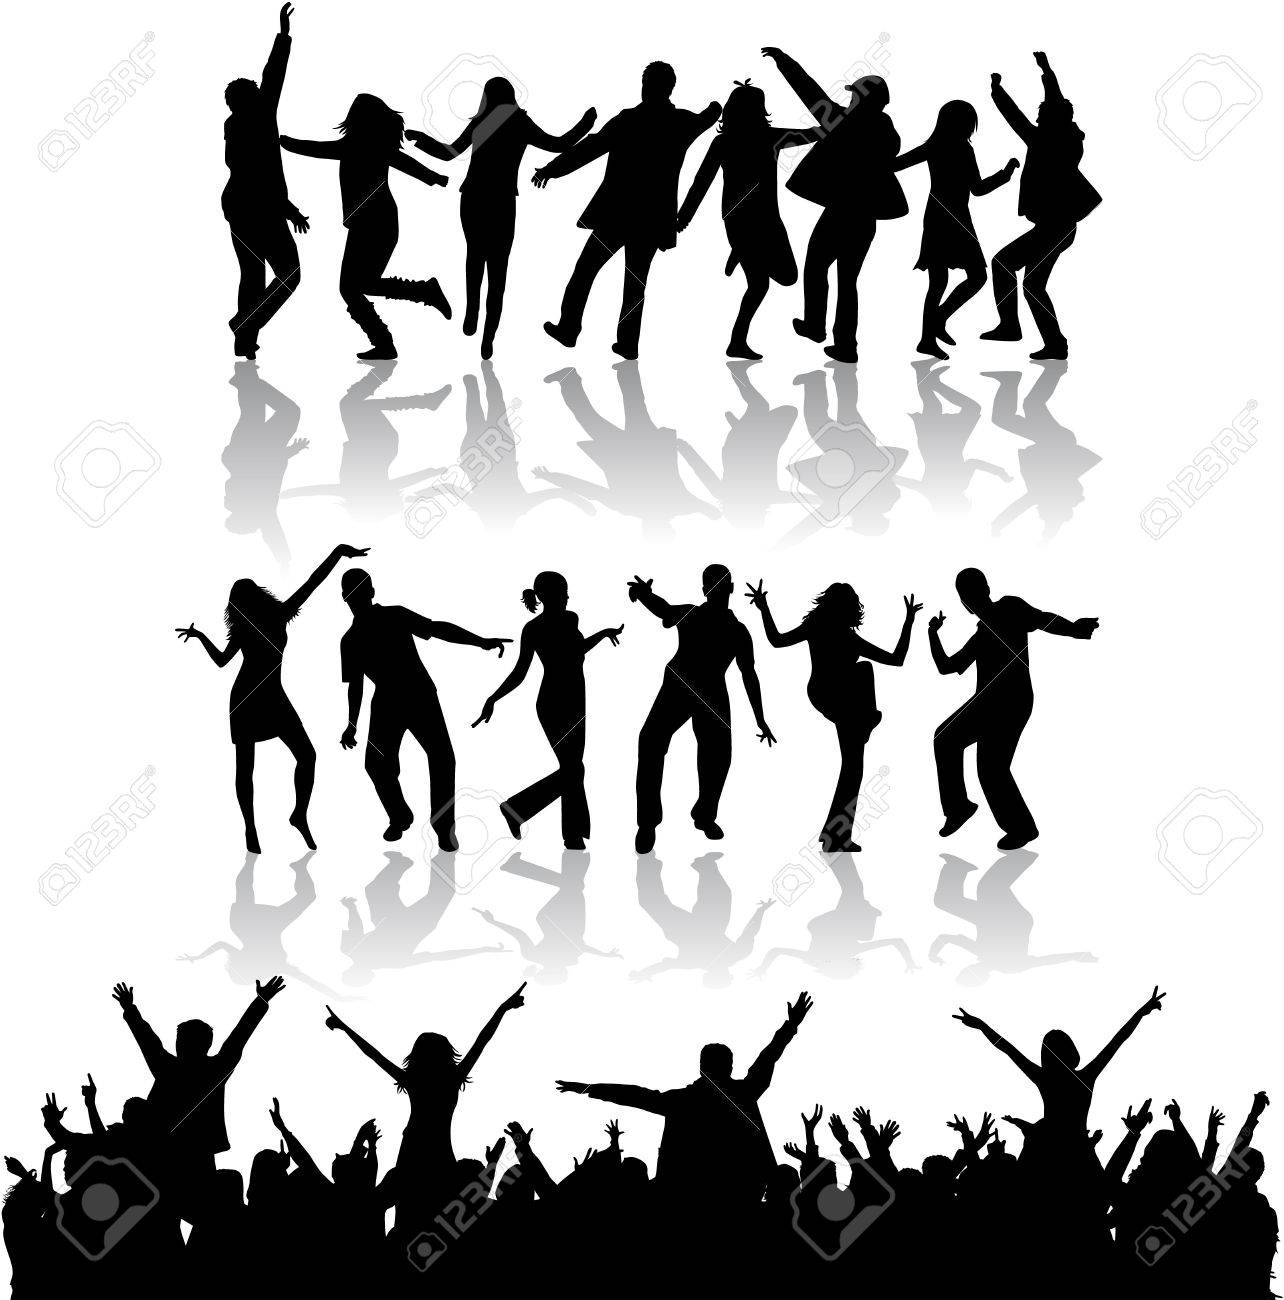 Dancing silhouettes - 36467337